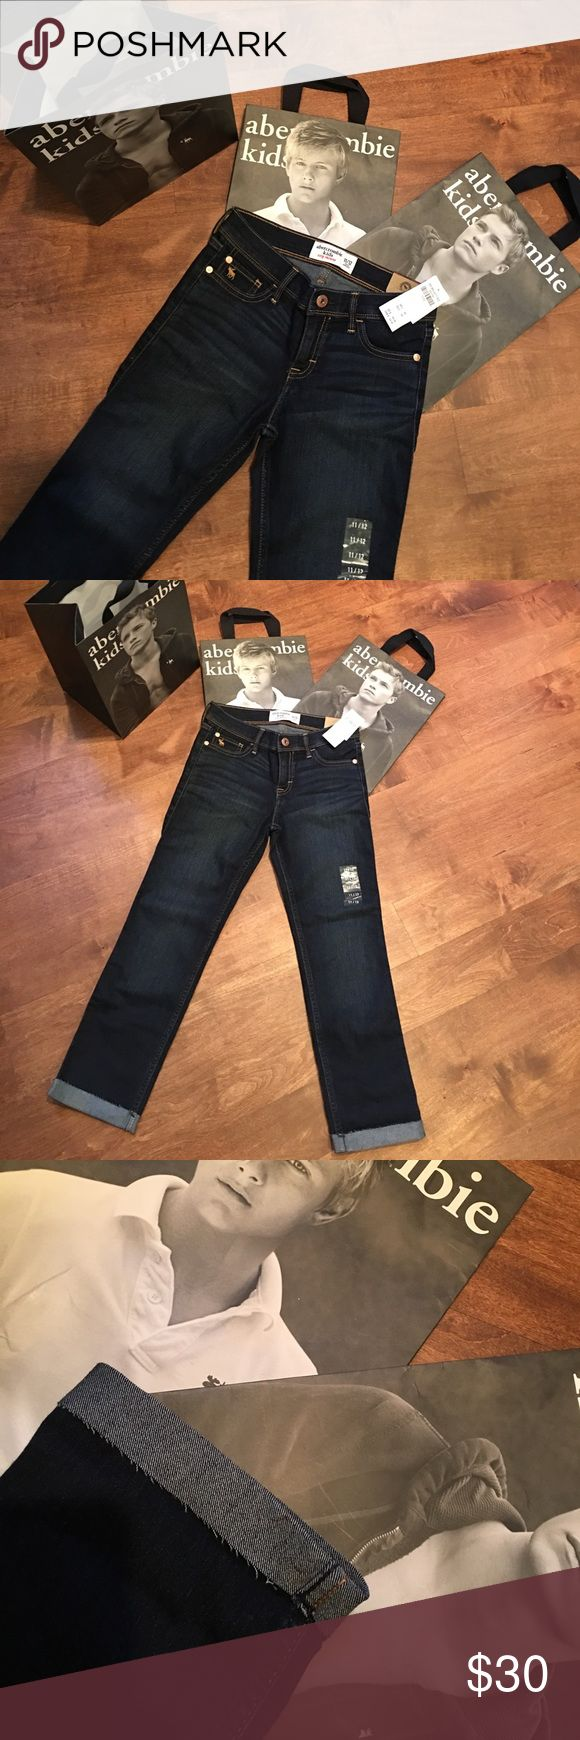 New Abercrombie kids girls crop skinny jeans 11/12 New with tag girls Abercrombie kids crop skinny jeans size 11\12 retails for 49.95 abercrombie kids Bottoms Jeans